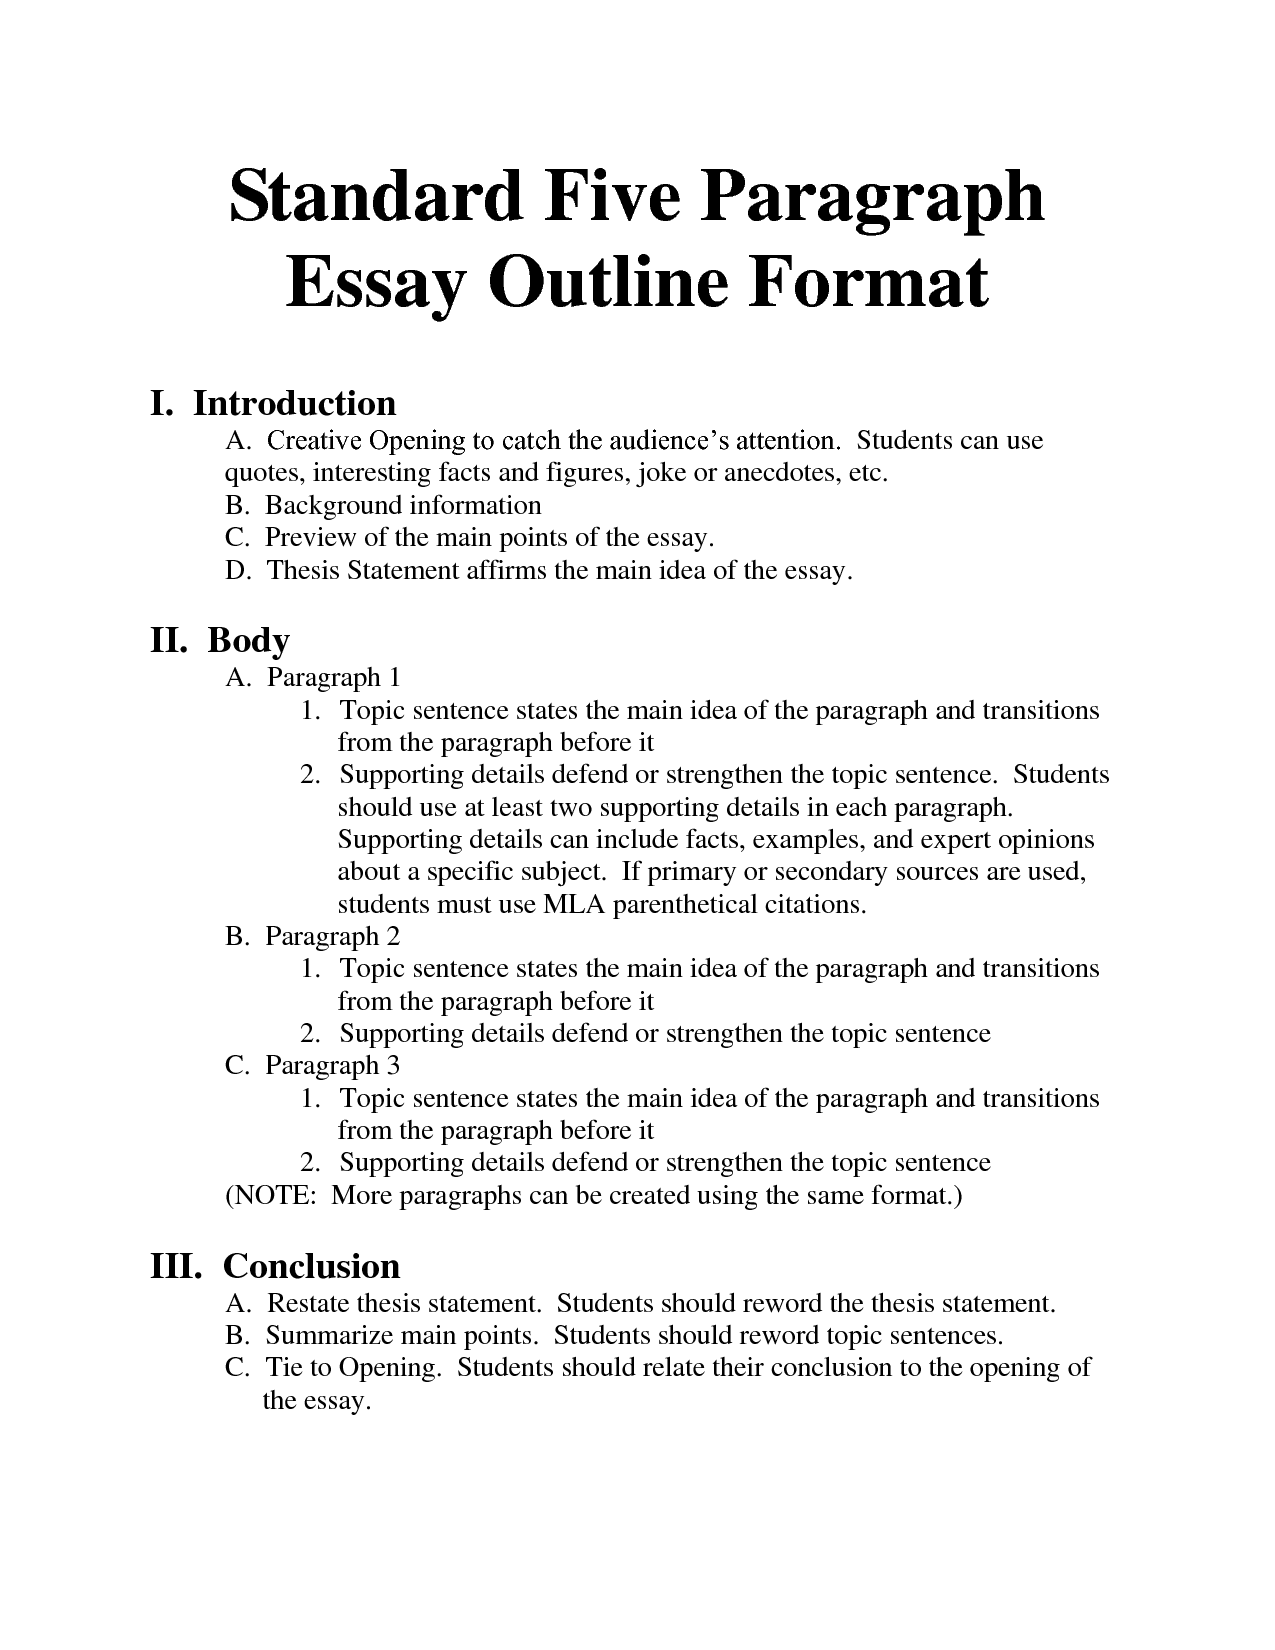 College essay templates college essay format templates template